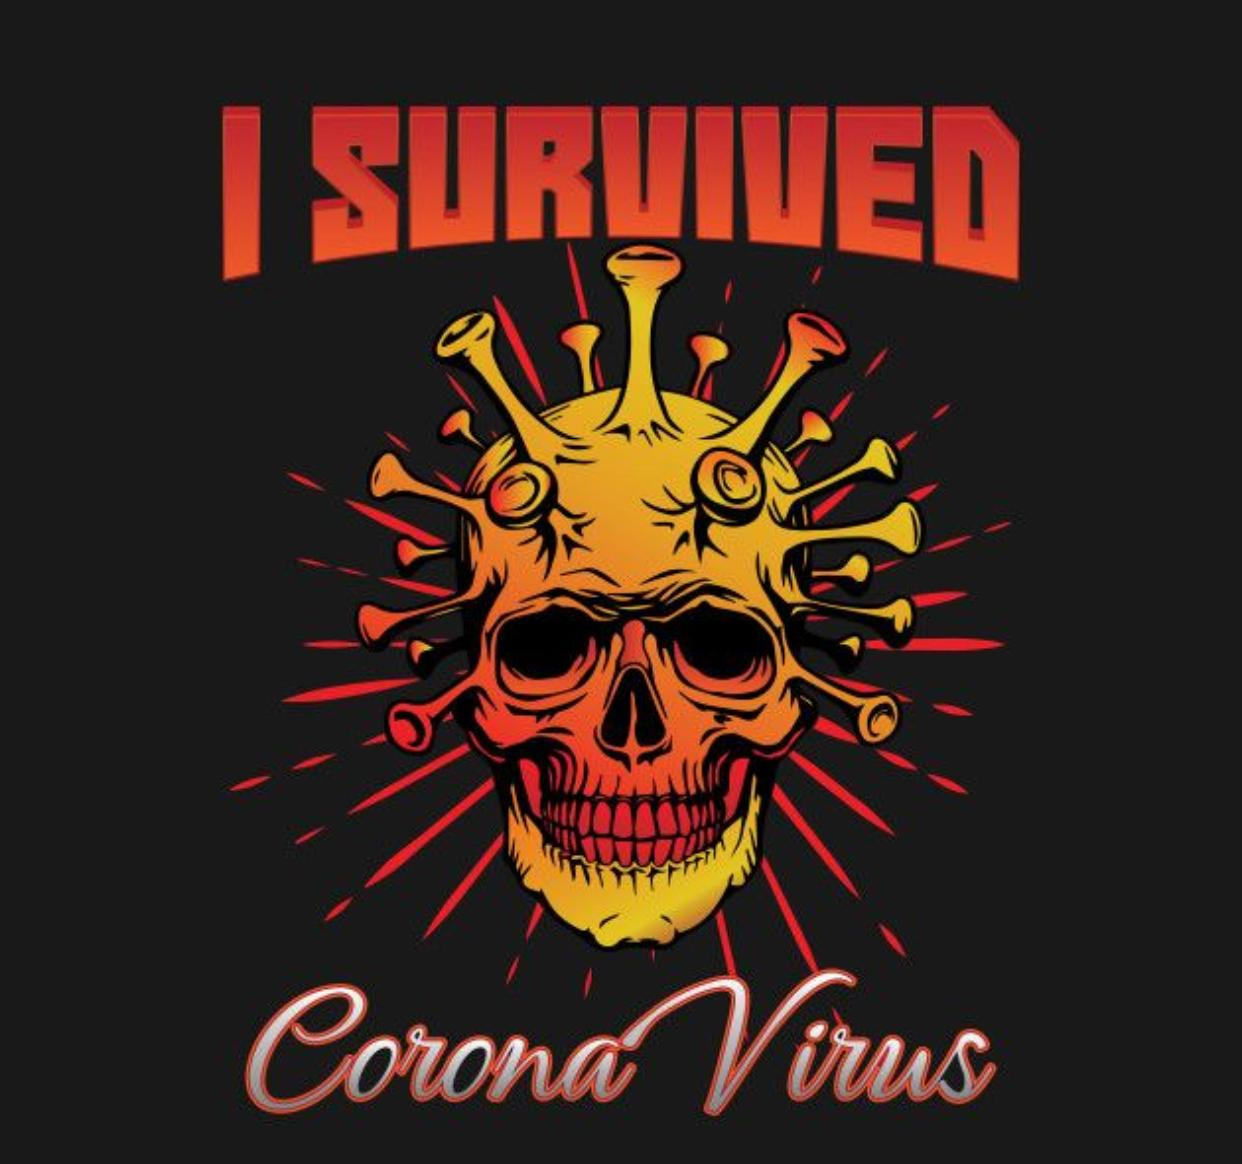 Camiseta Masculina Unissex I Survived Corana Virus (Preta) - EV